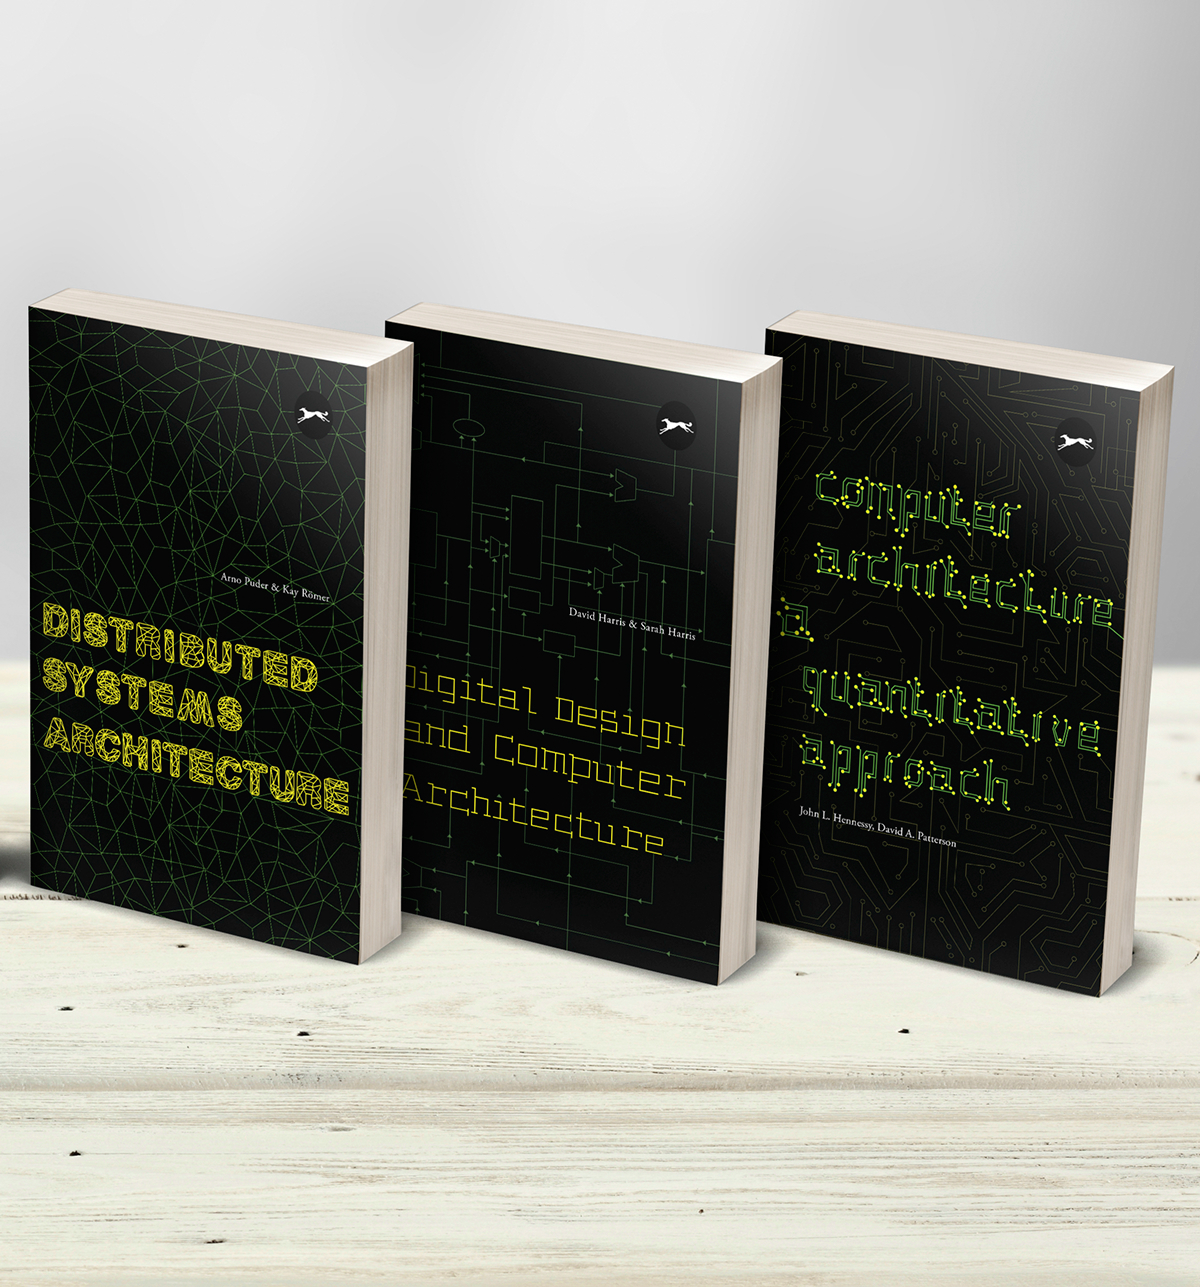 book cover series book cover Science books Computer Type computer books experimental type